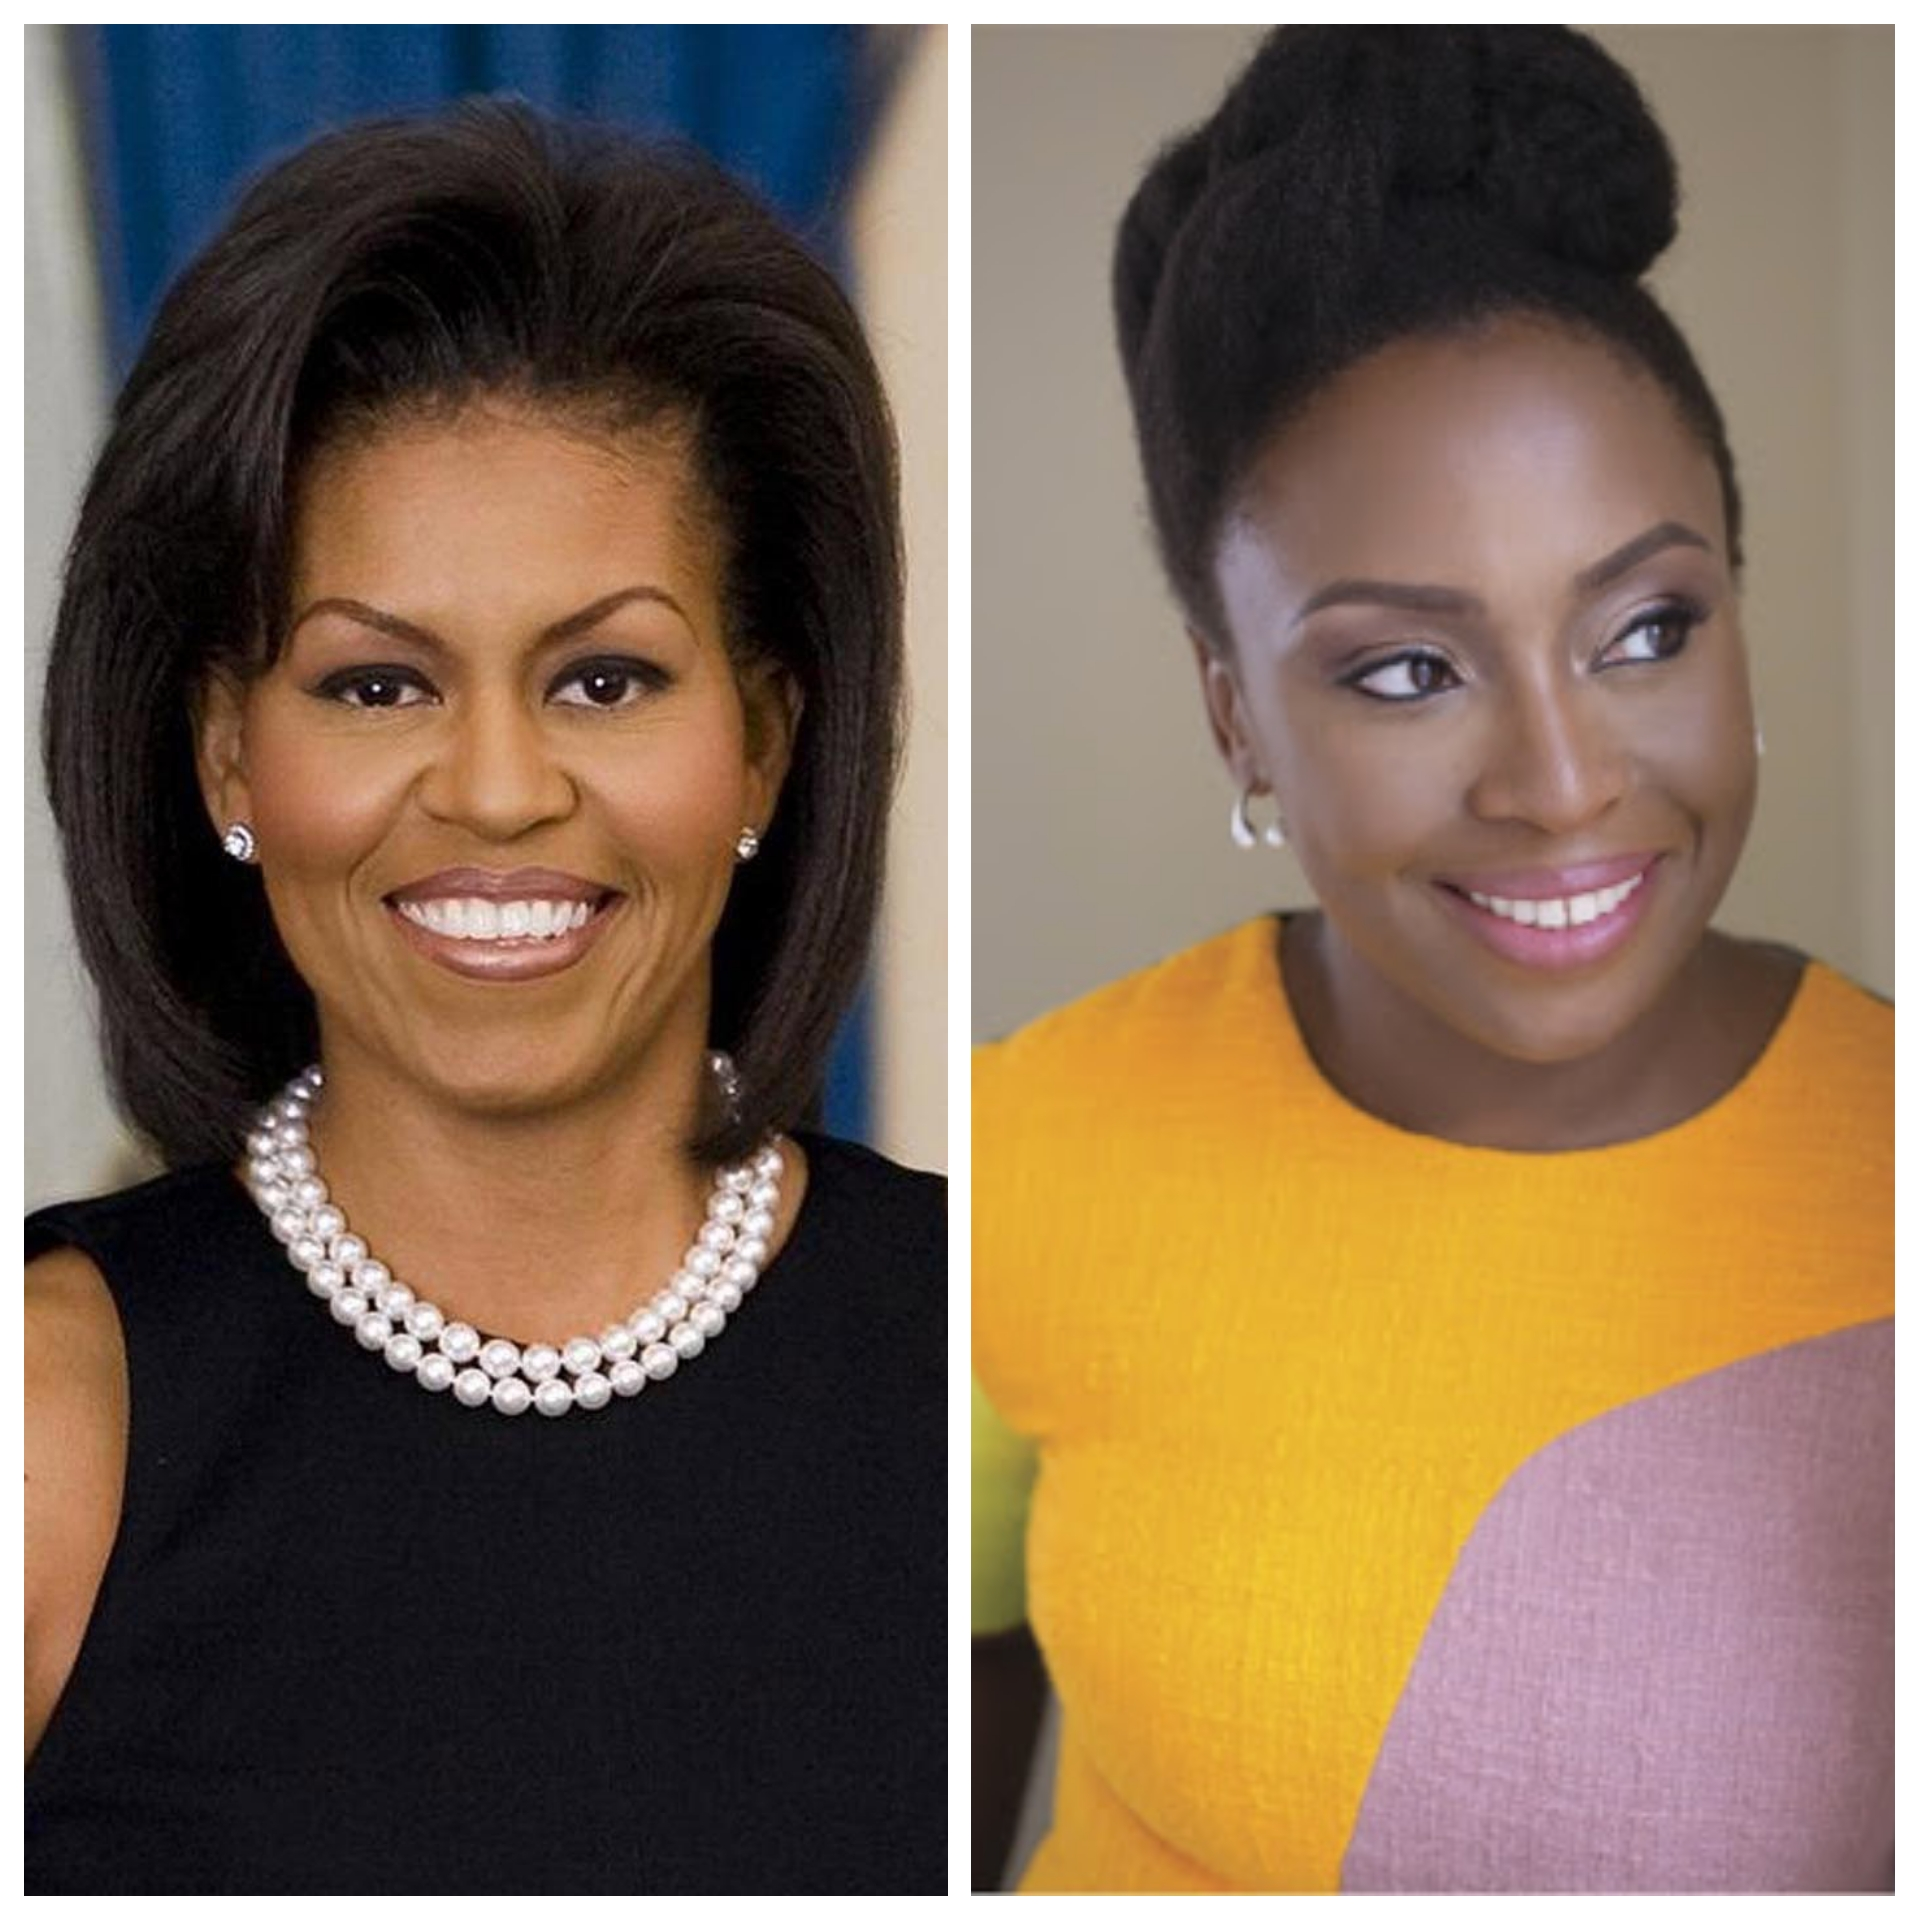 Adichie to moderate Obama's book event on December 3rd